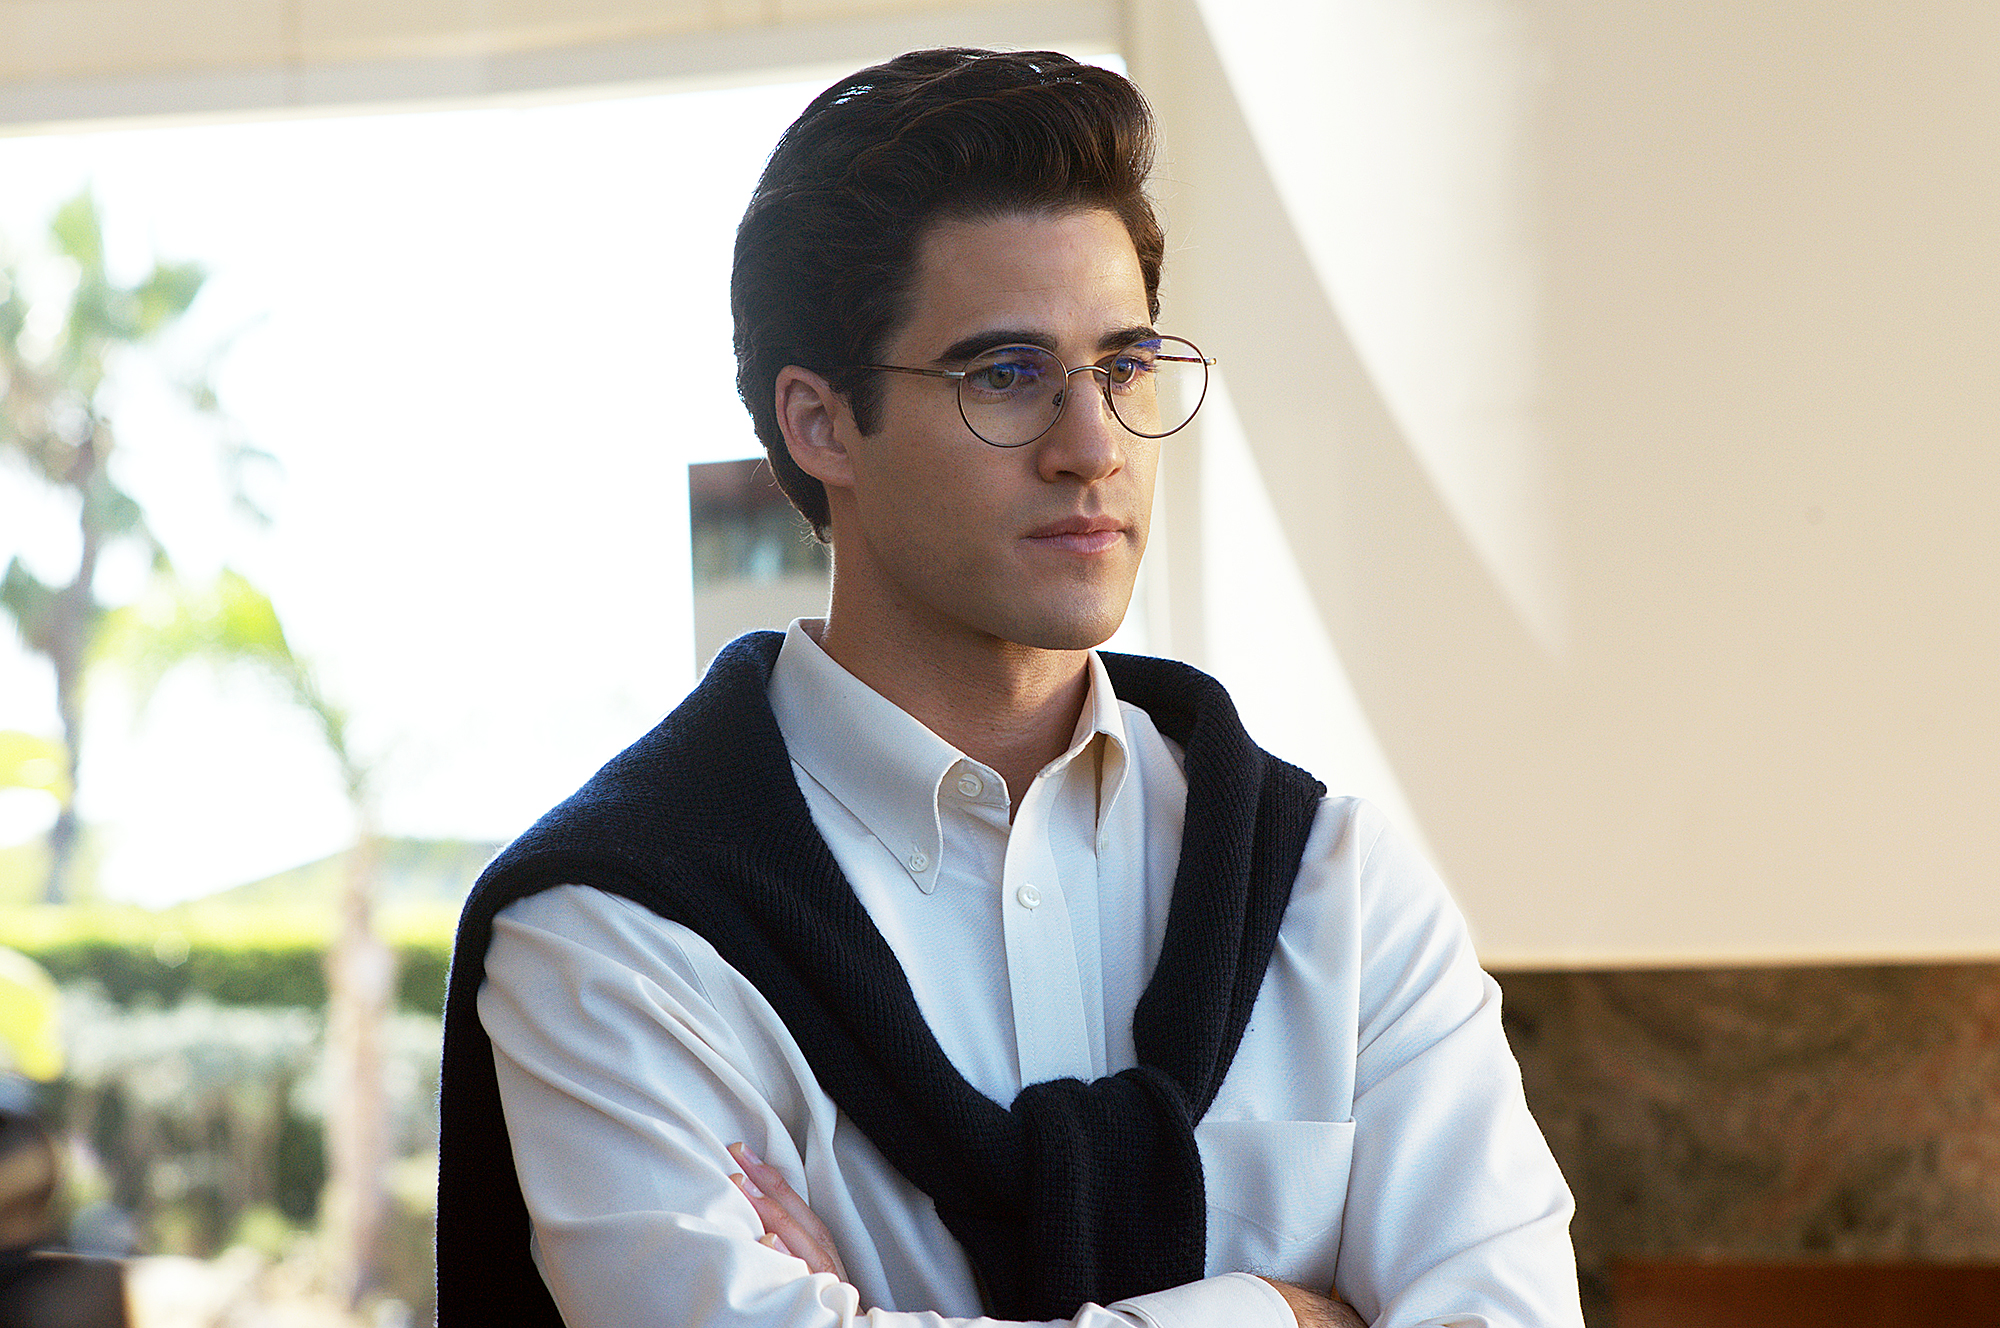 Darren Criss Emmy Nominations The Assassination of Gianni Versace